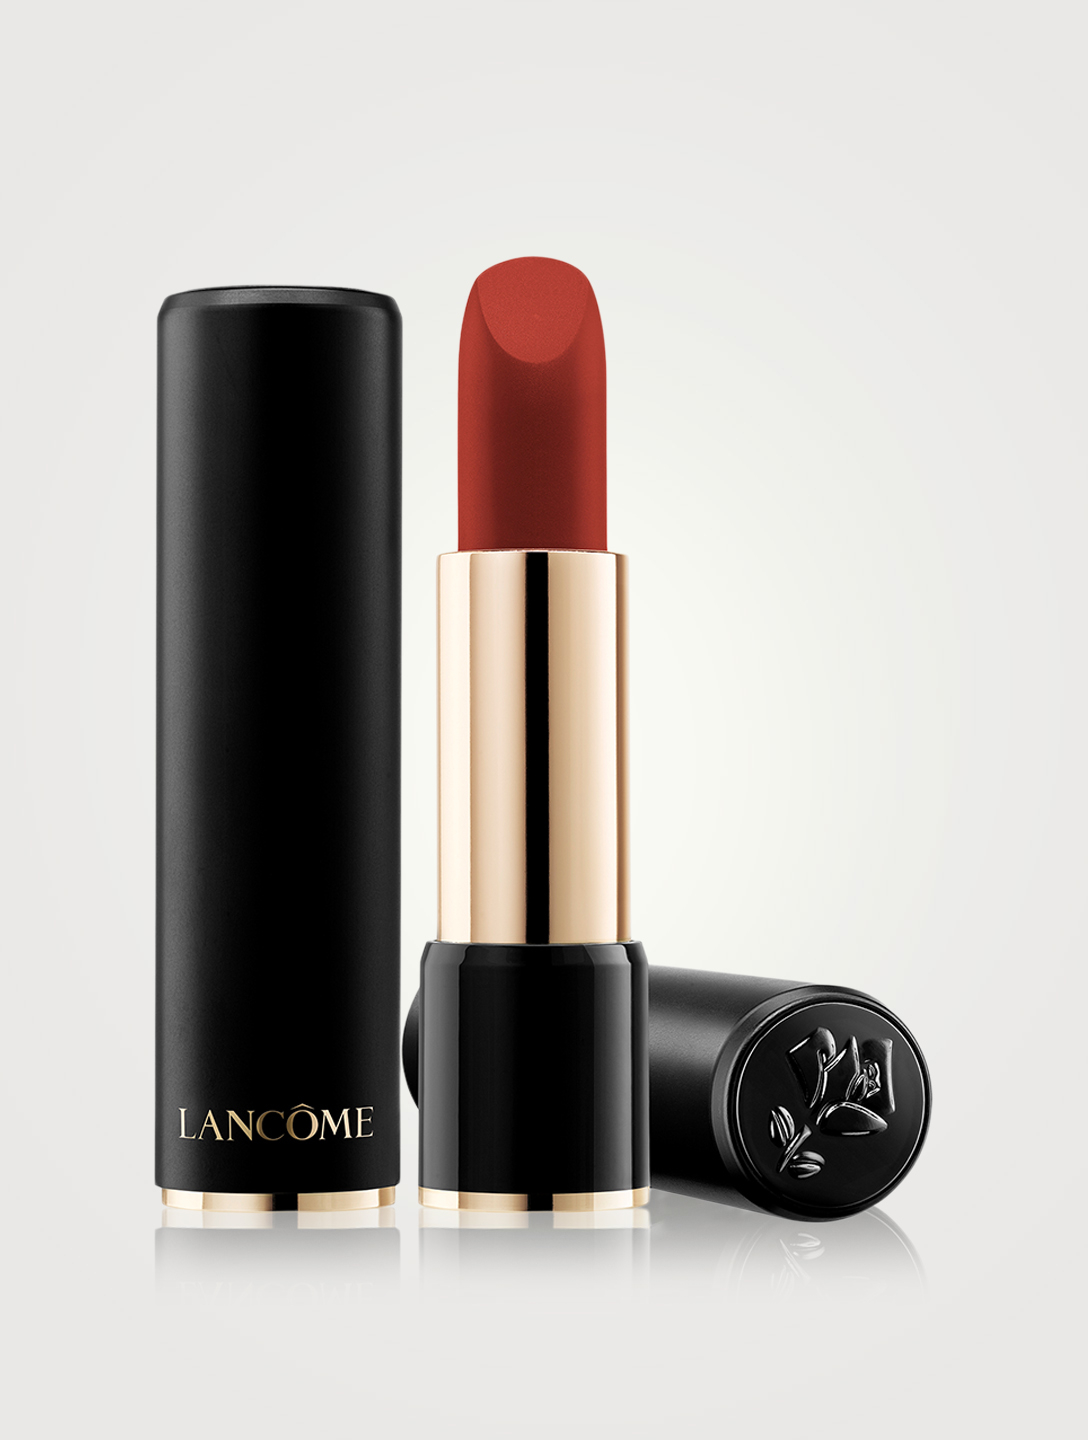 LANCÔME L'Absolu Rouge Drama Matte Lipstick Beauty Red